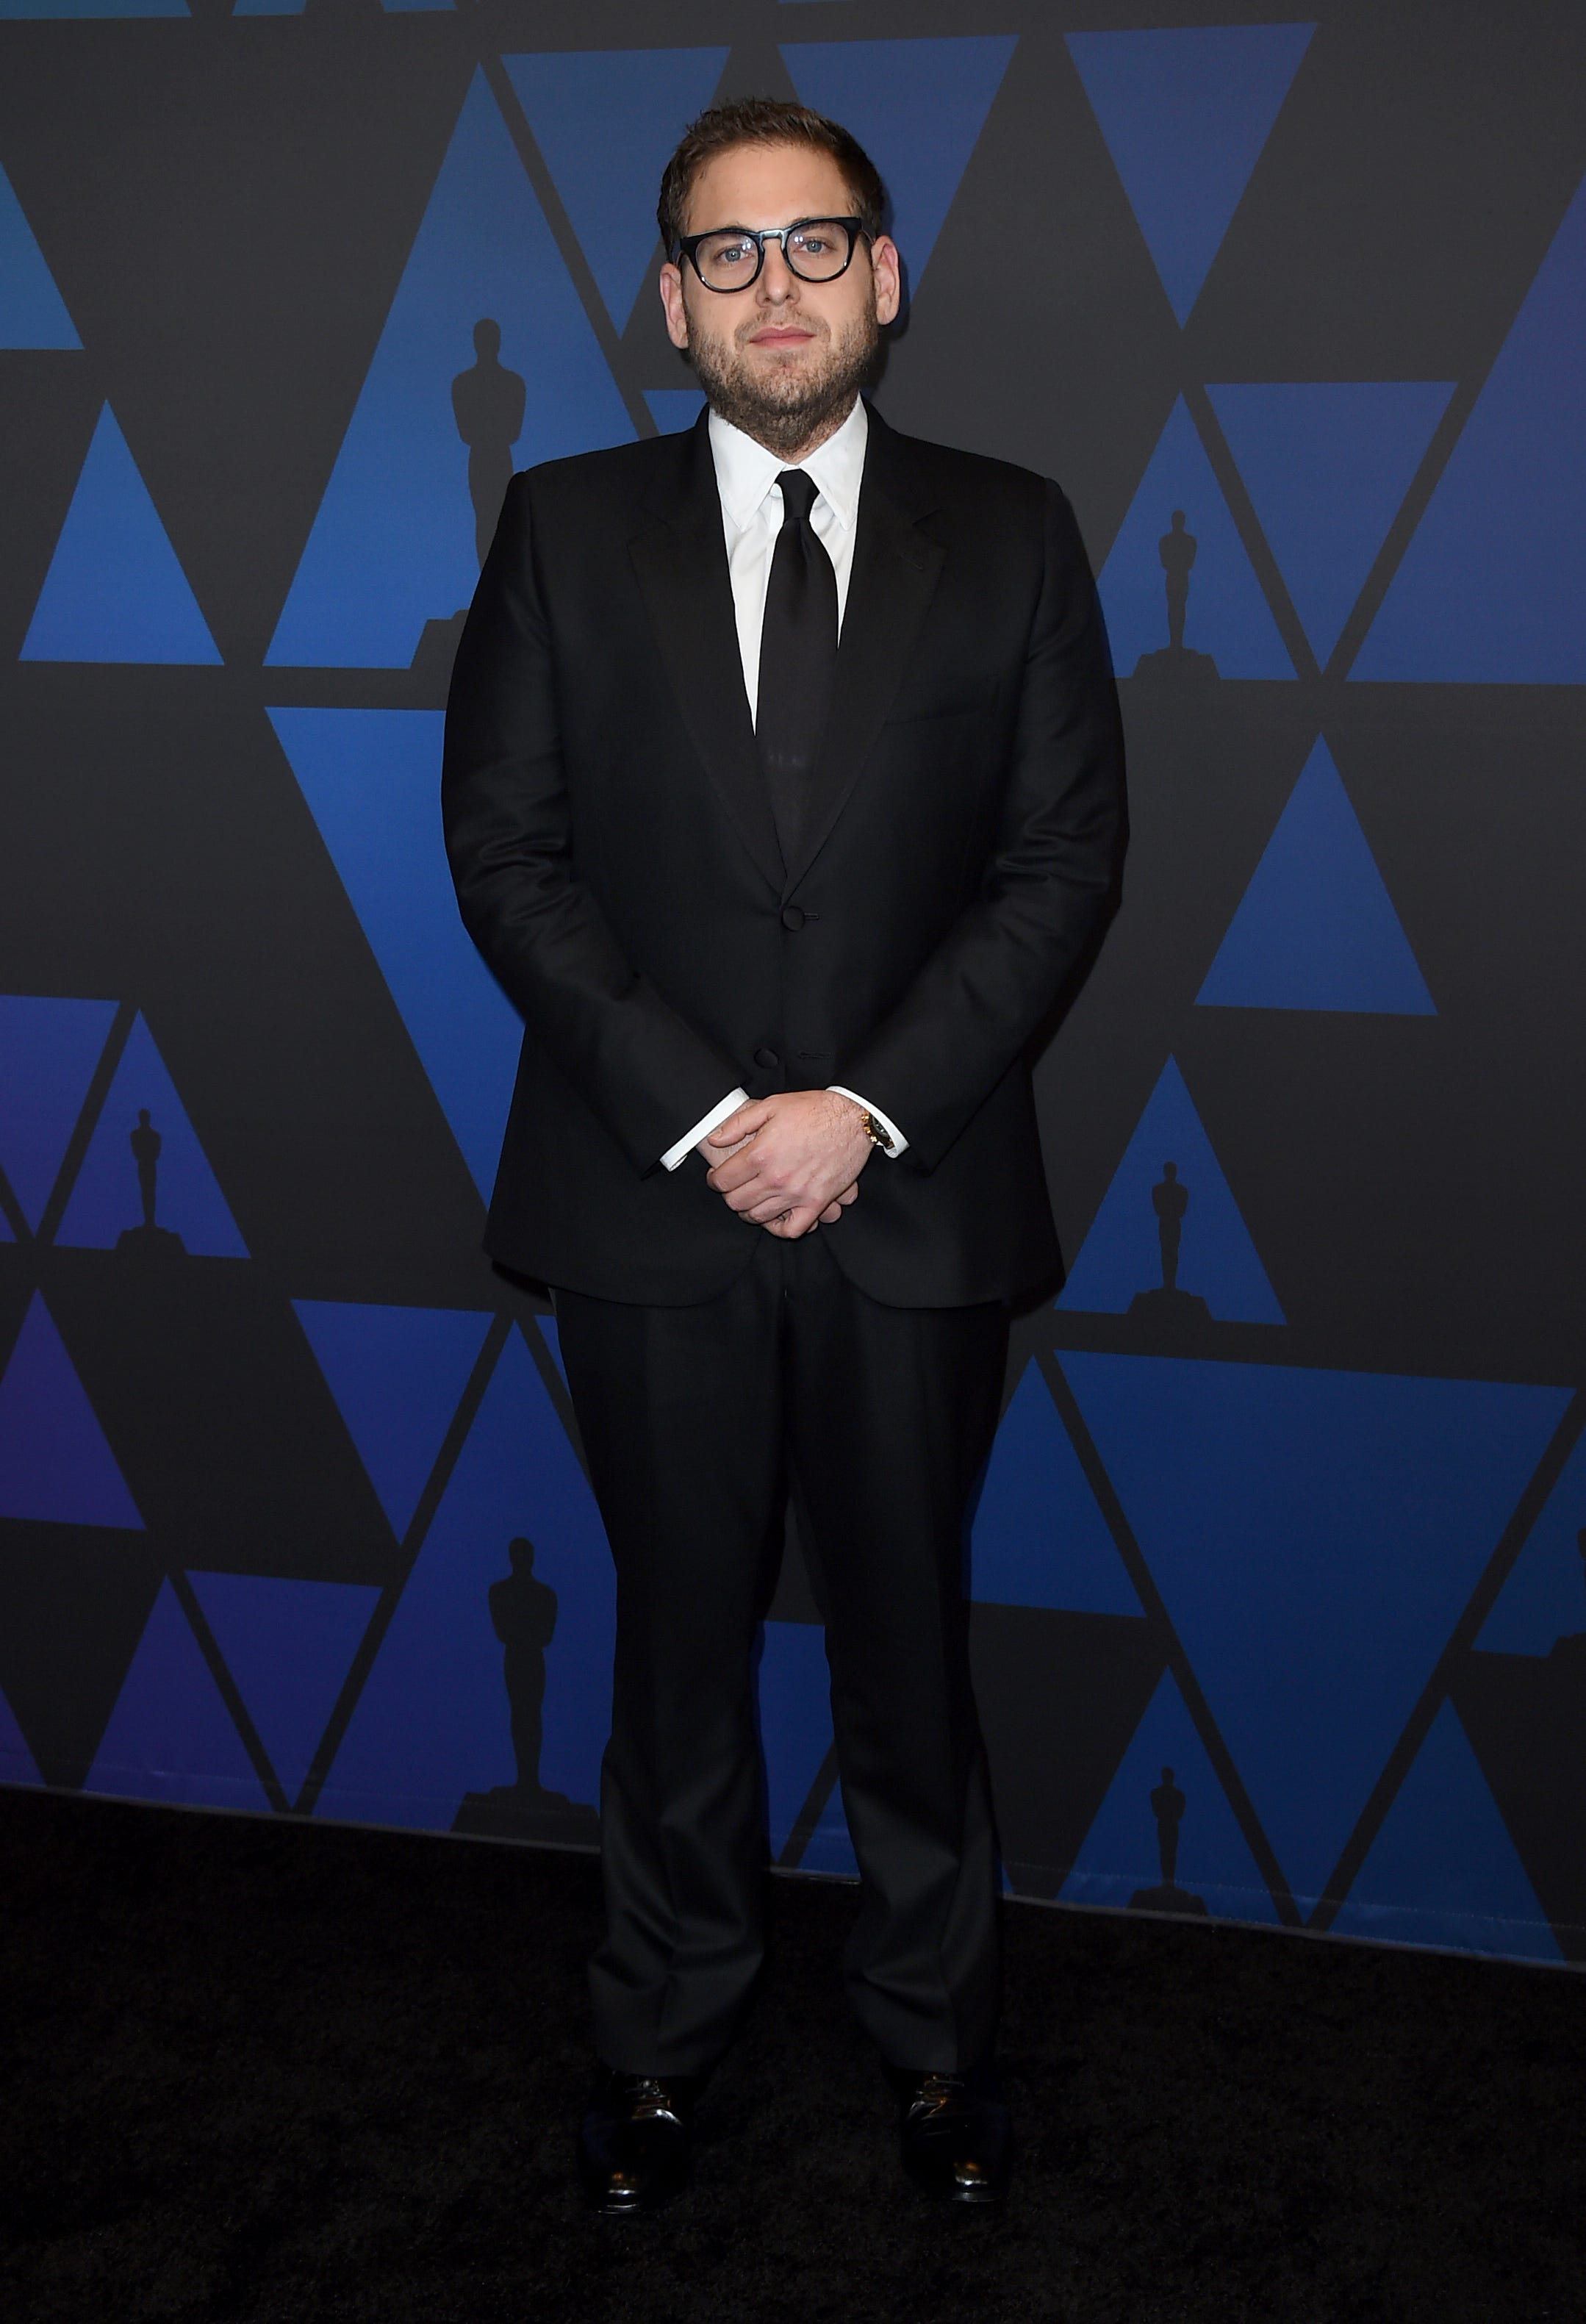 Jonah Hill reflects on  childhood insecurities  after Daily Mail published shirtless photo of actor